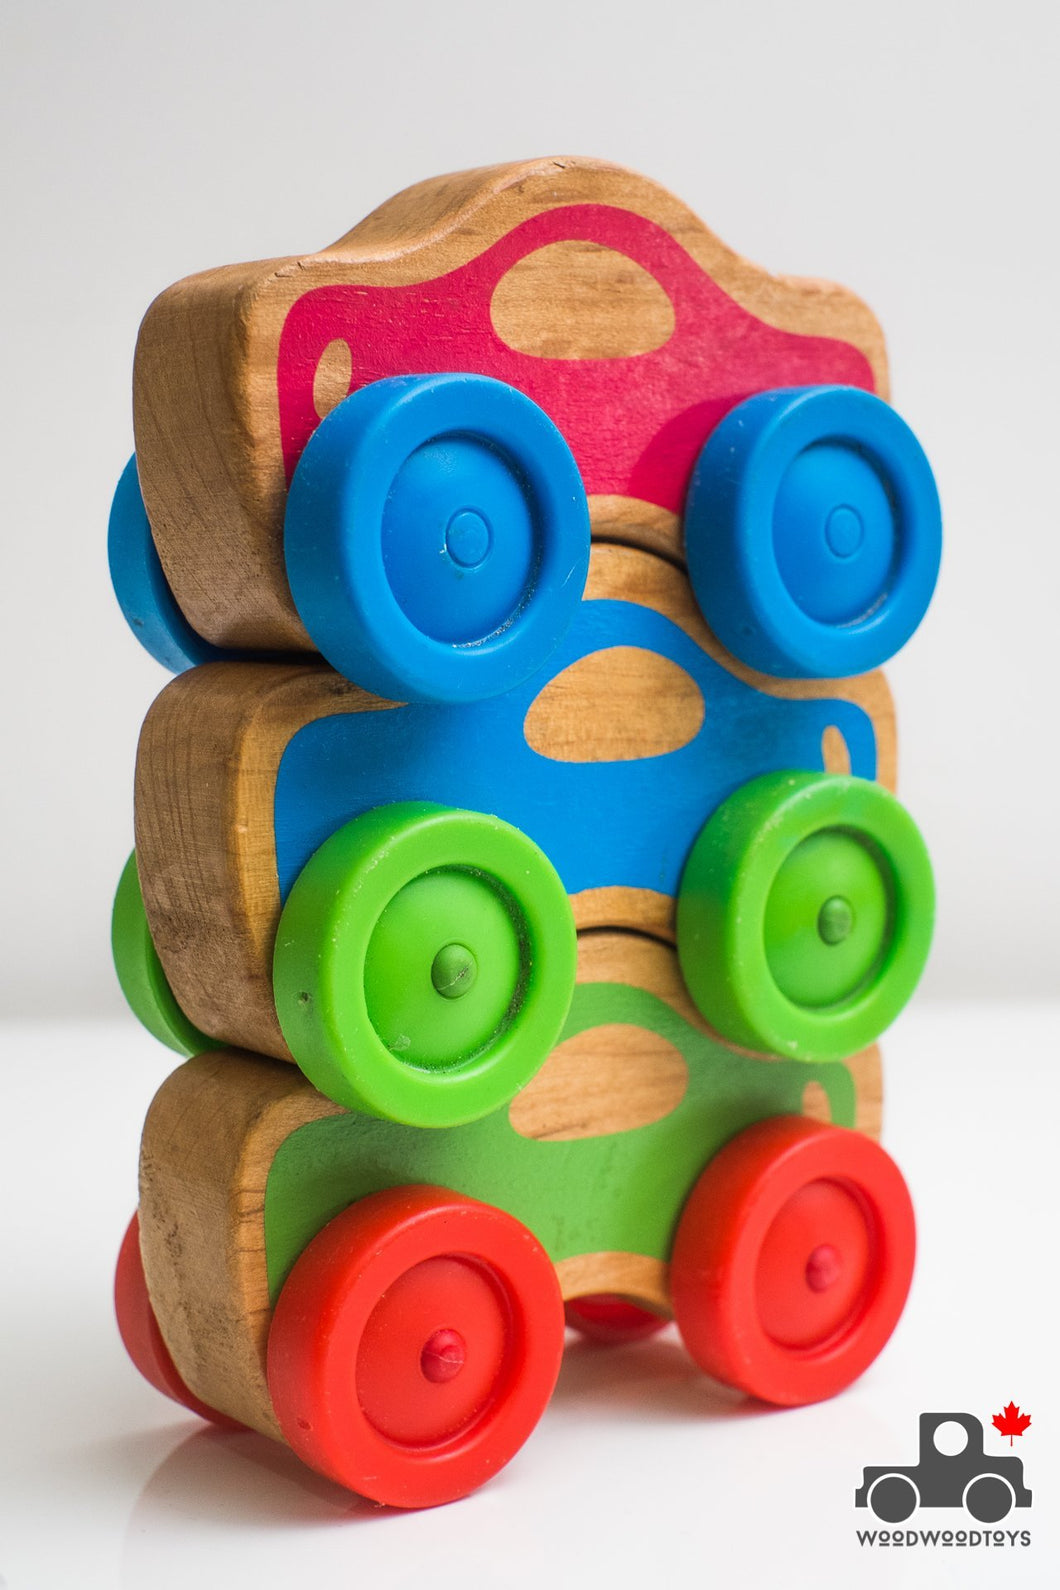 Melissa & Doug First Play Stacking Cars (set of 3) - Wood Wood Toys Canada's Favourite Montessori Toy Store